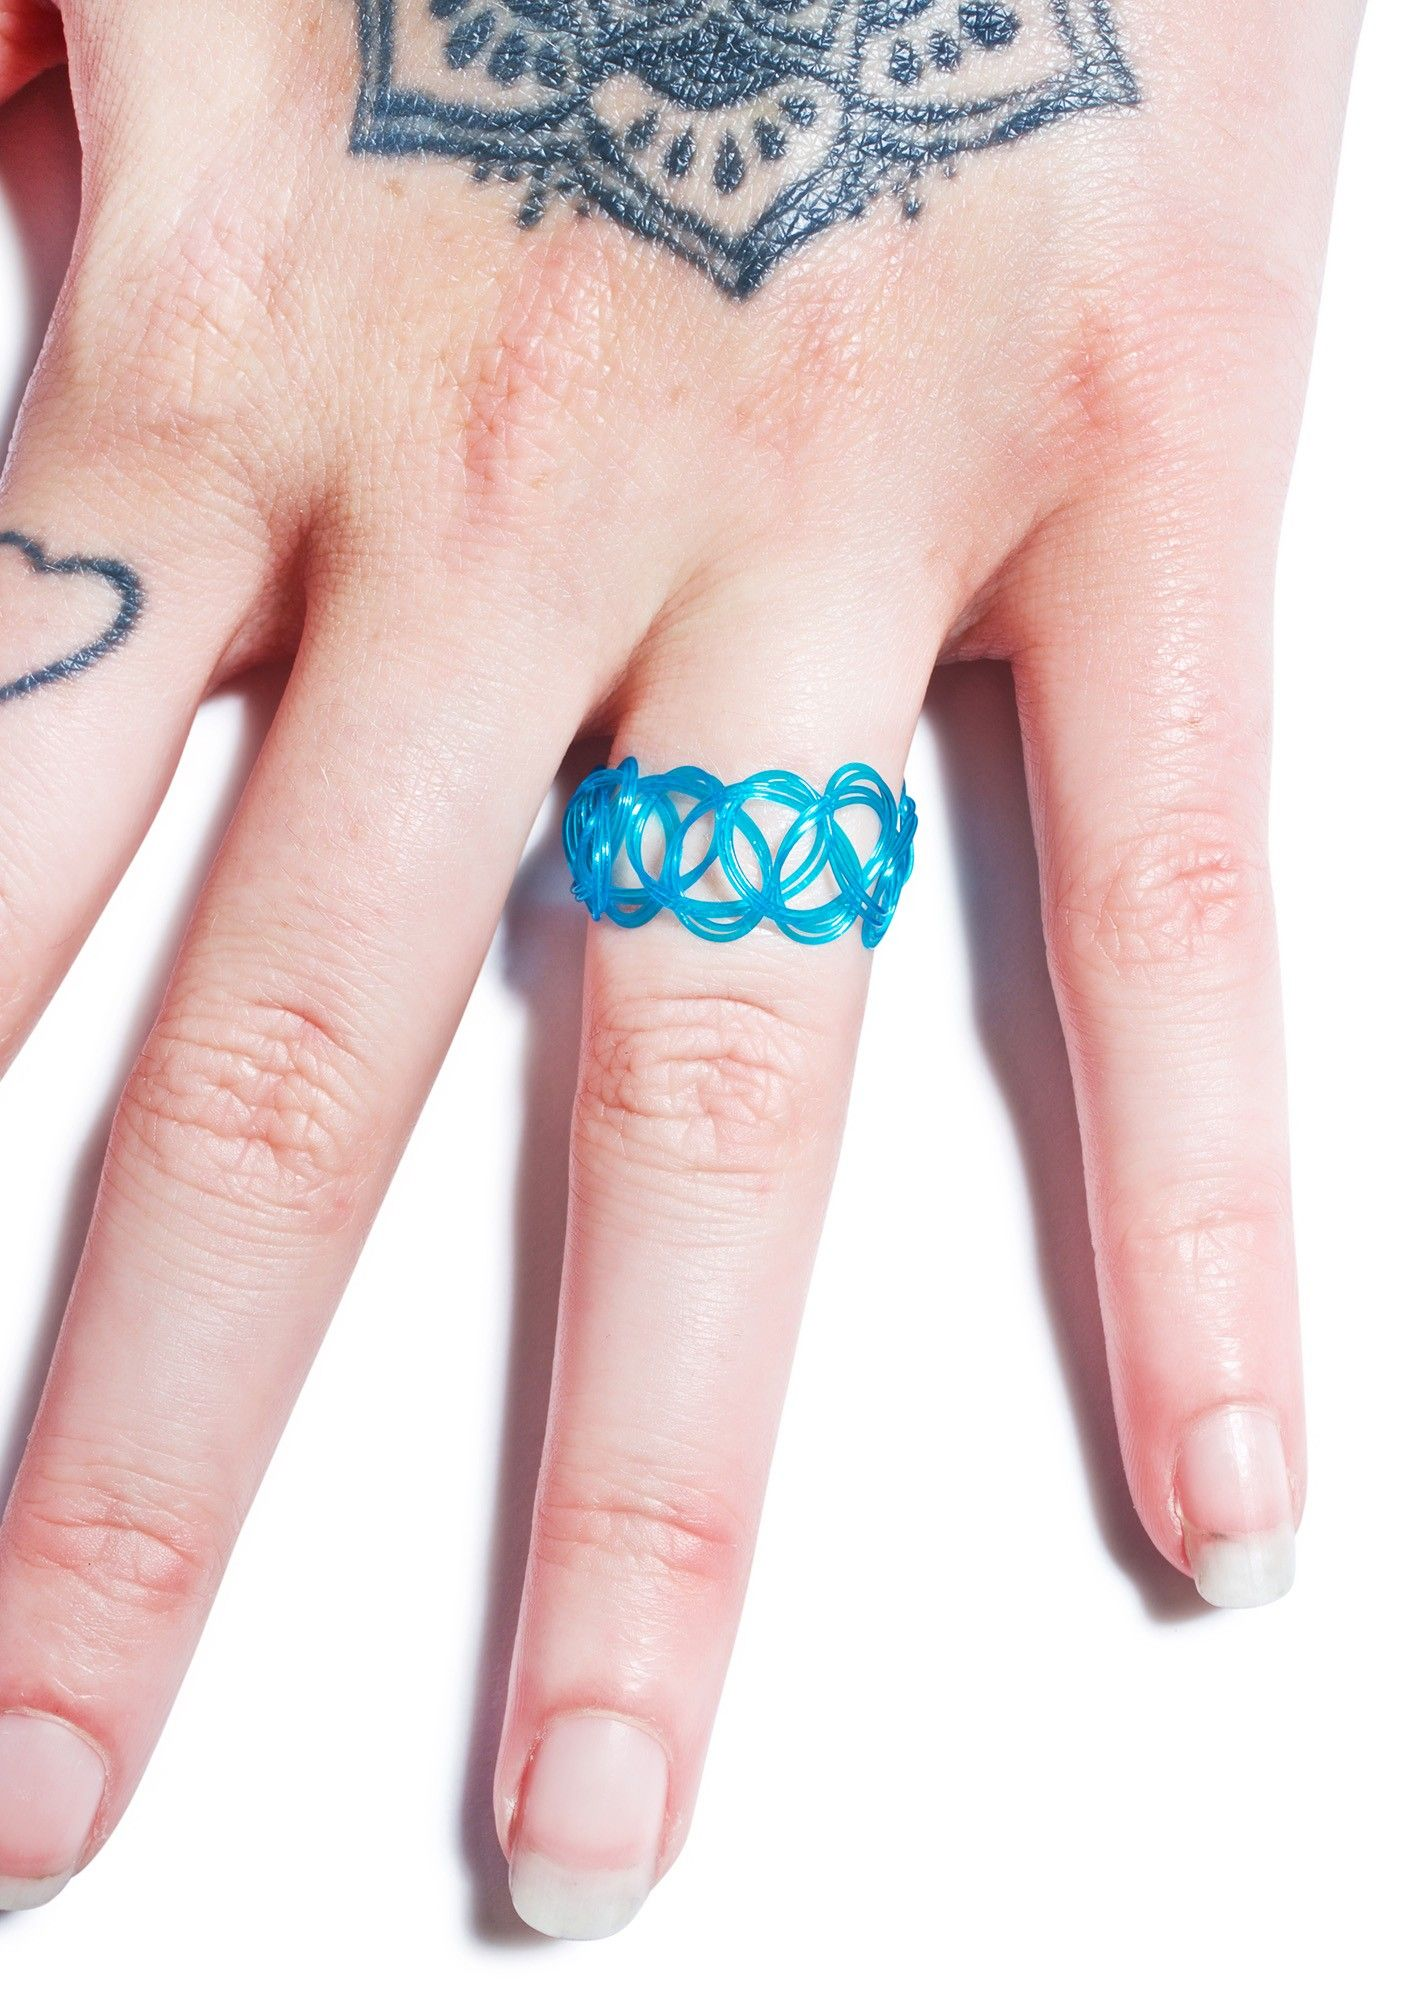 Vending Machine Tattoo Ring | Tattoo rings, Vending machine and ...